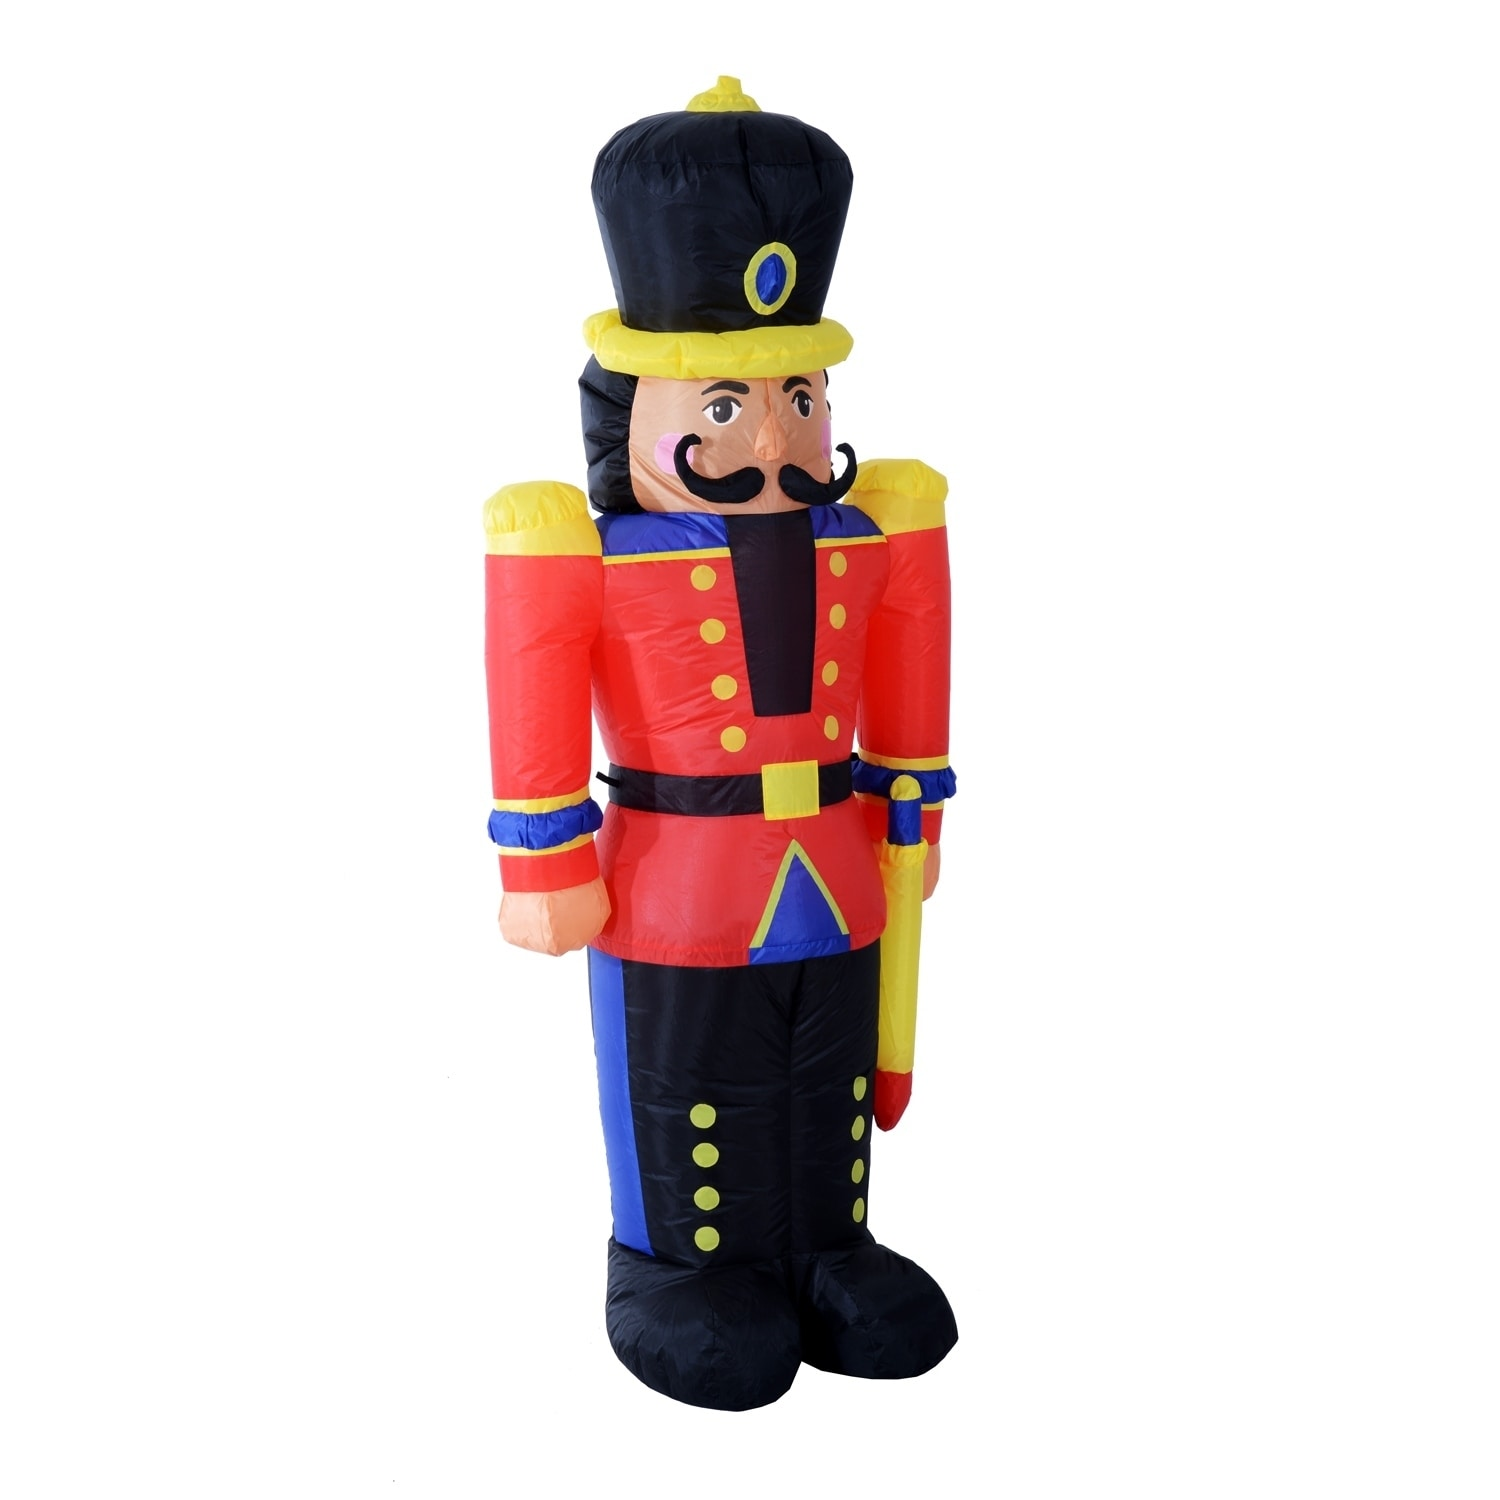 Outdoor Toy Soldier Christmas Decorations.Homcom 6 Ft Tall Outdoor Lighted Airblown Inflatable Christmas Lawn Decoration Nutcracker Toy Soldier